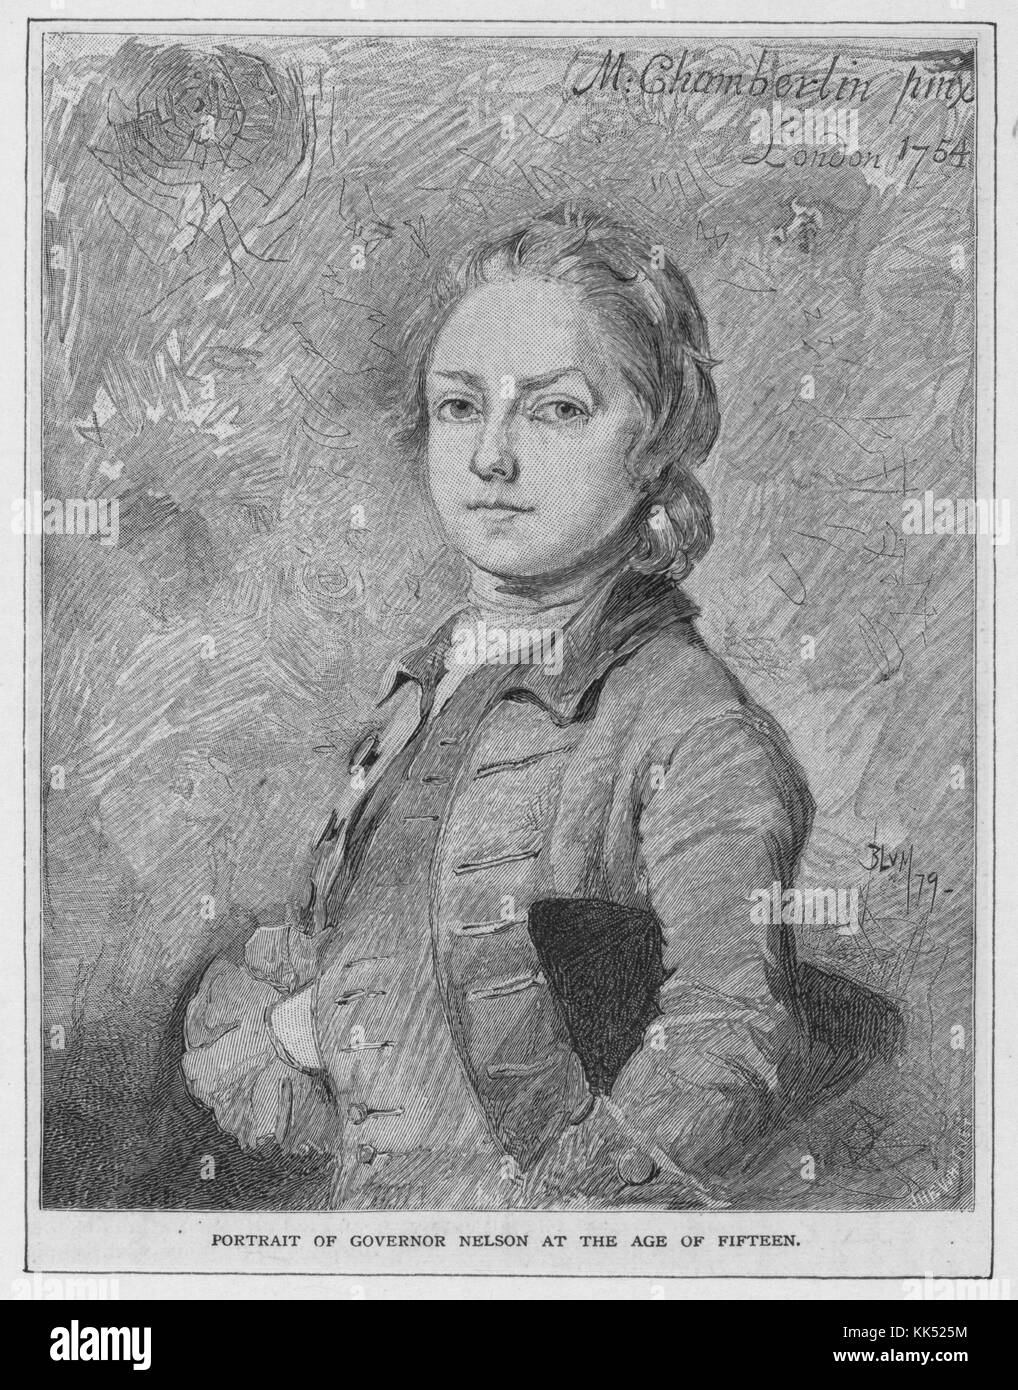 Wood engraving portrait of Thomas Nelson, Junior, a planter, statesman, and soldier, signer of the Declaration of - Stock Image